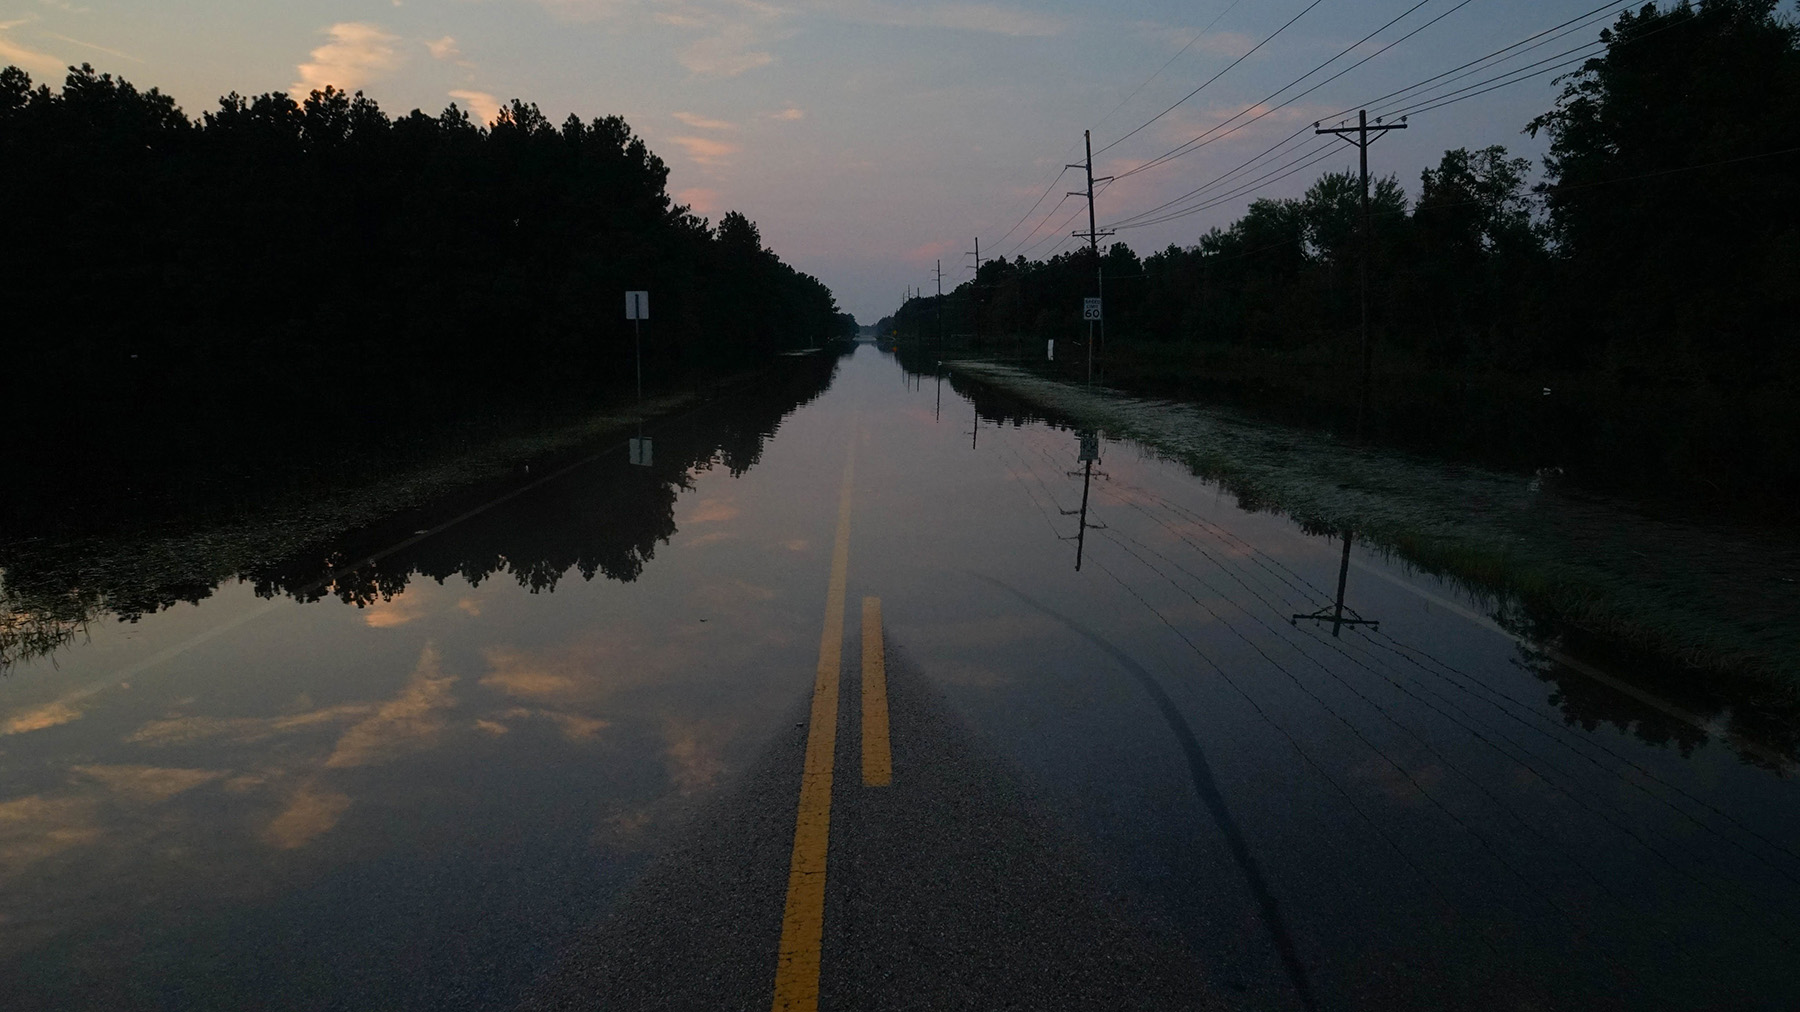 A road obscured by the floodwaters near Beaumont, Texas. (Lara Cooper/Direct Relief photo)